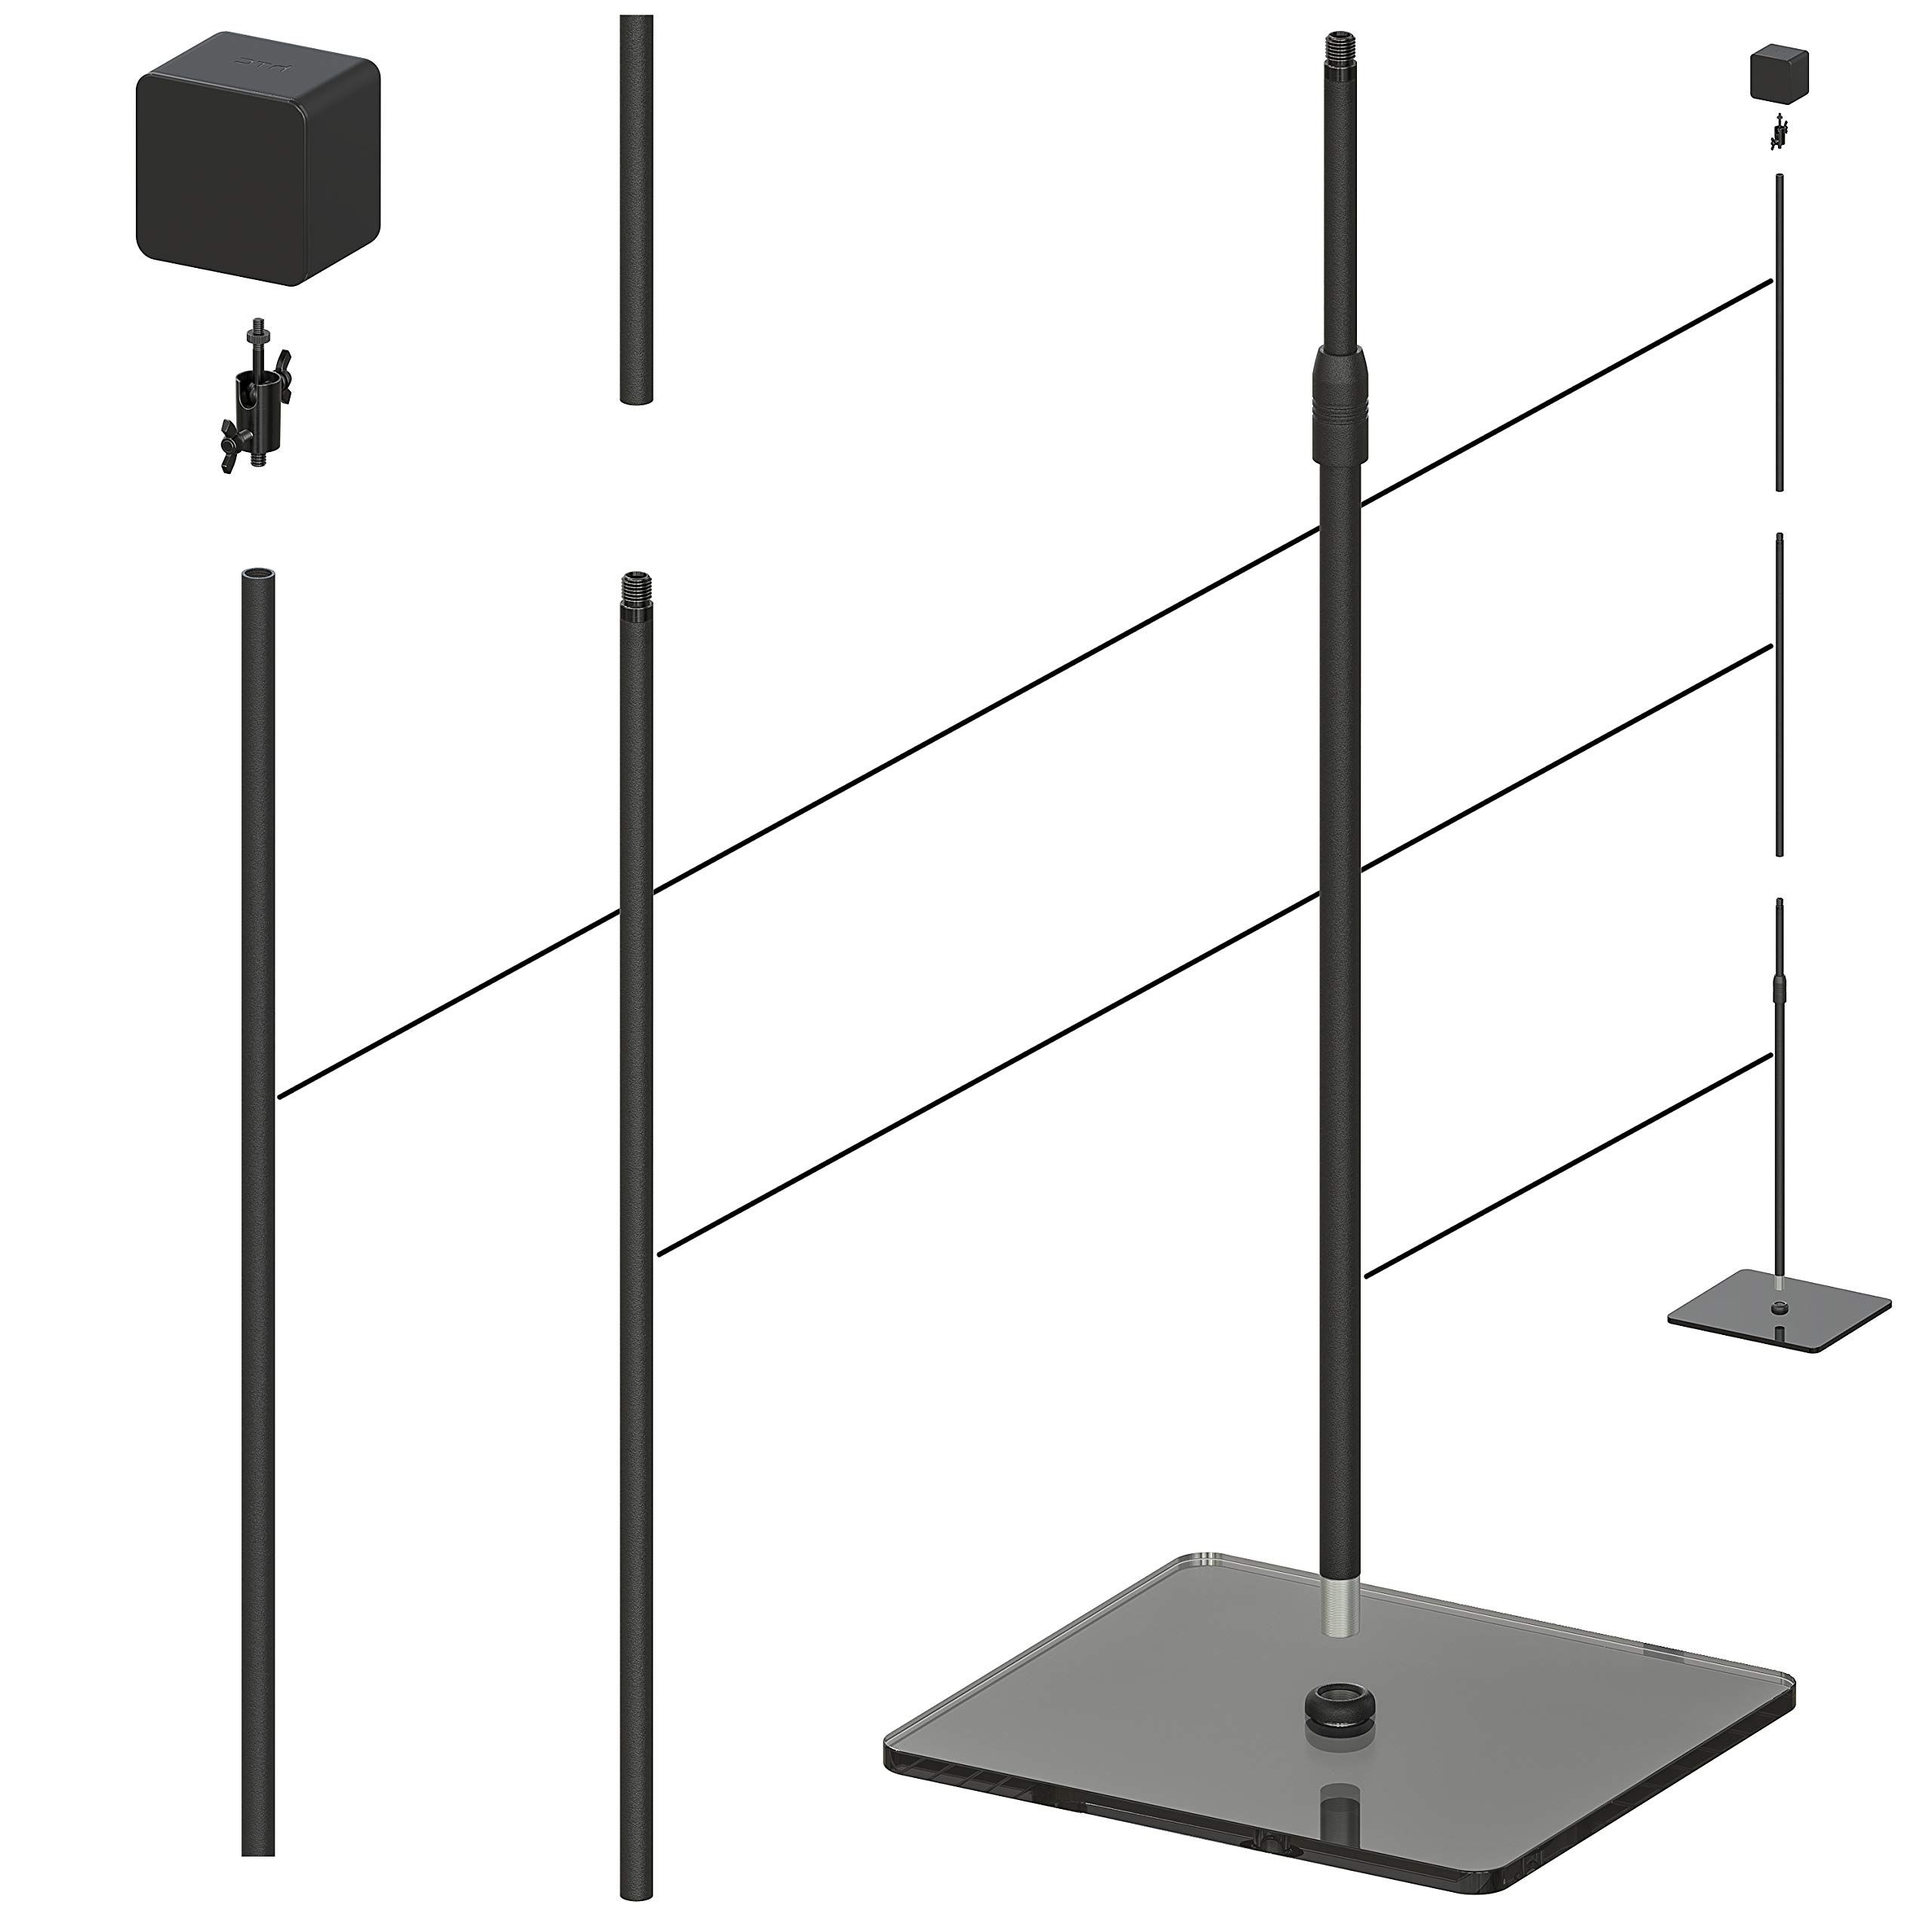 Skywin Vr Glass Stand Htc Vive Compatible Sensor Stand And Base Station For Vive And Rift Constellation Sensors 2 Pack Htc Vive Constellations Glass Htc